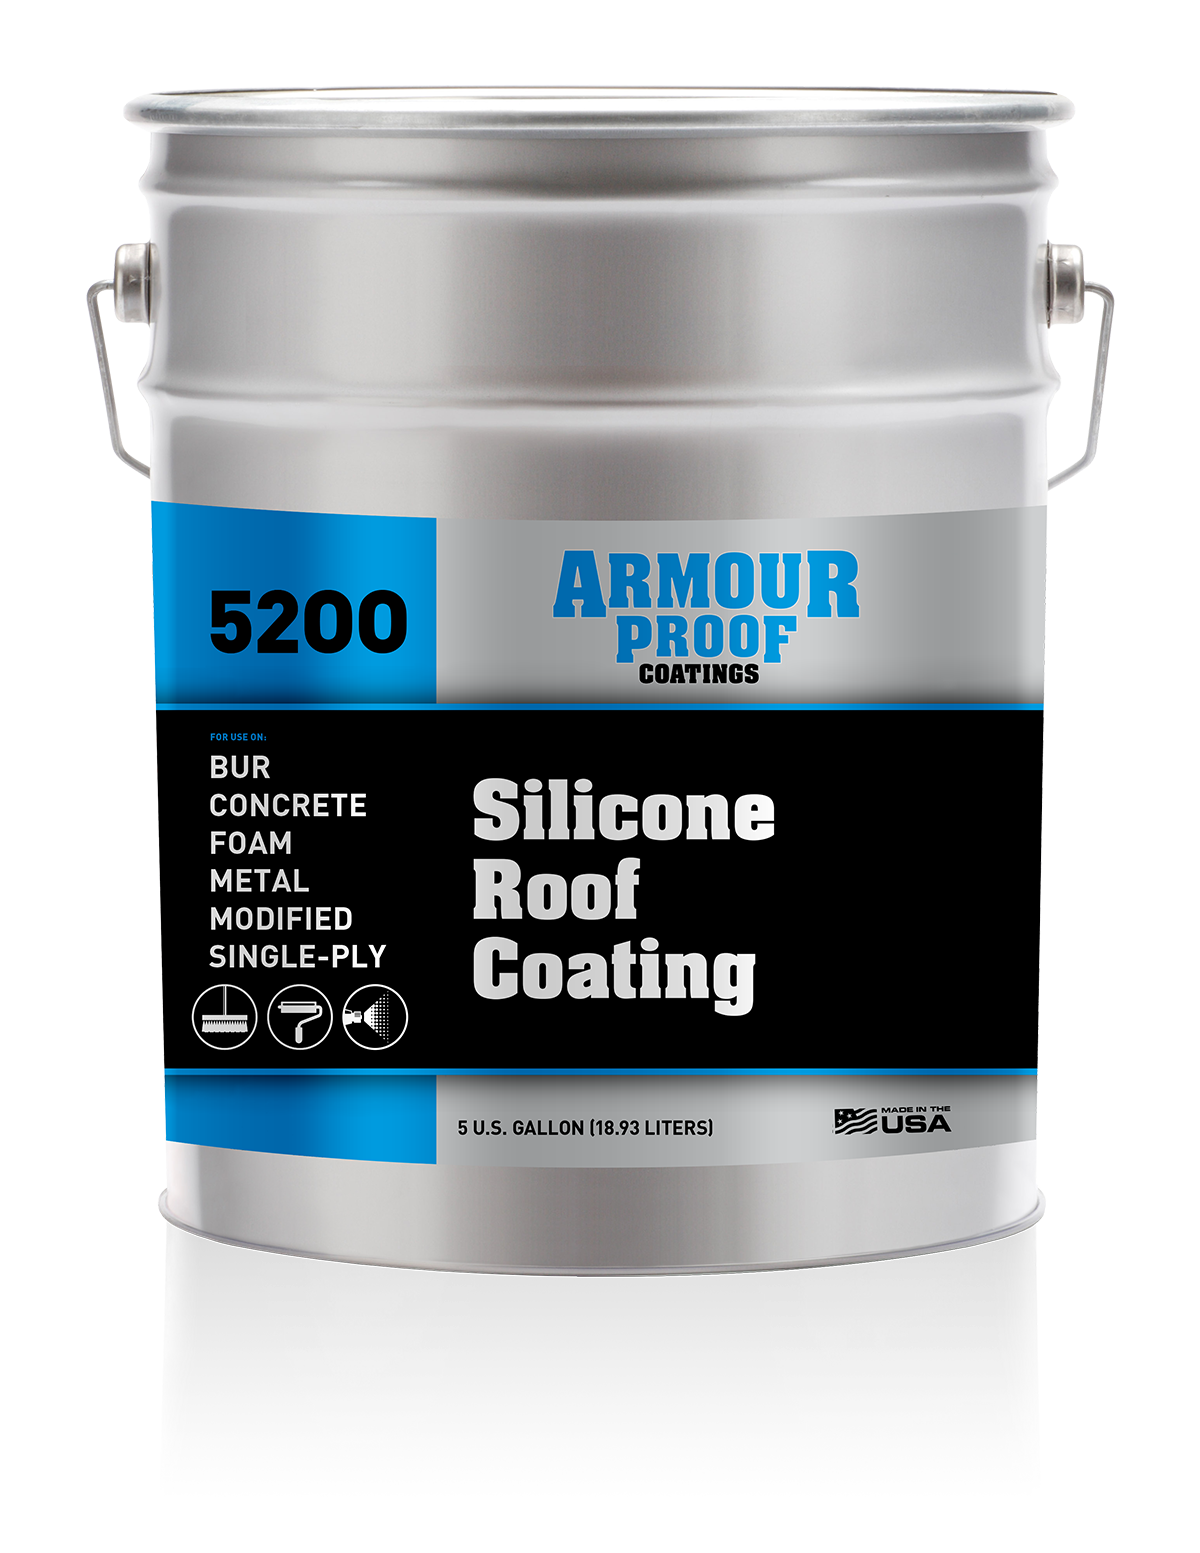 Image of Armour Proof 5200 Silicone Roof Coating - 5 Gallon Pail